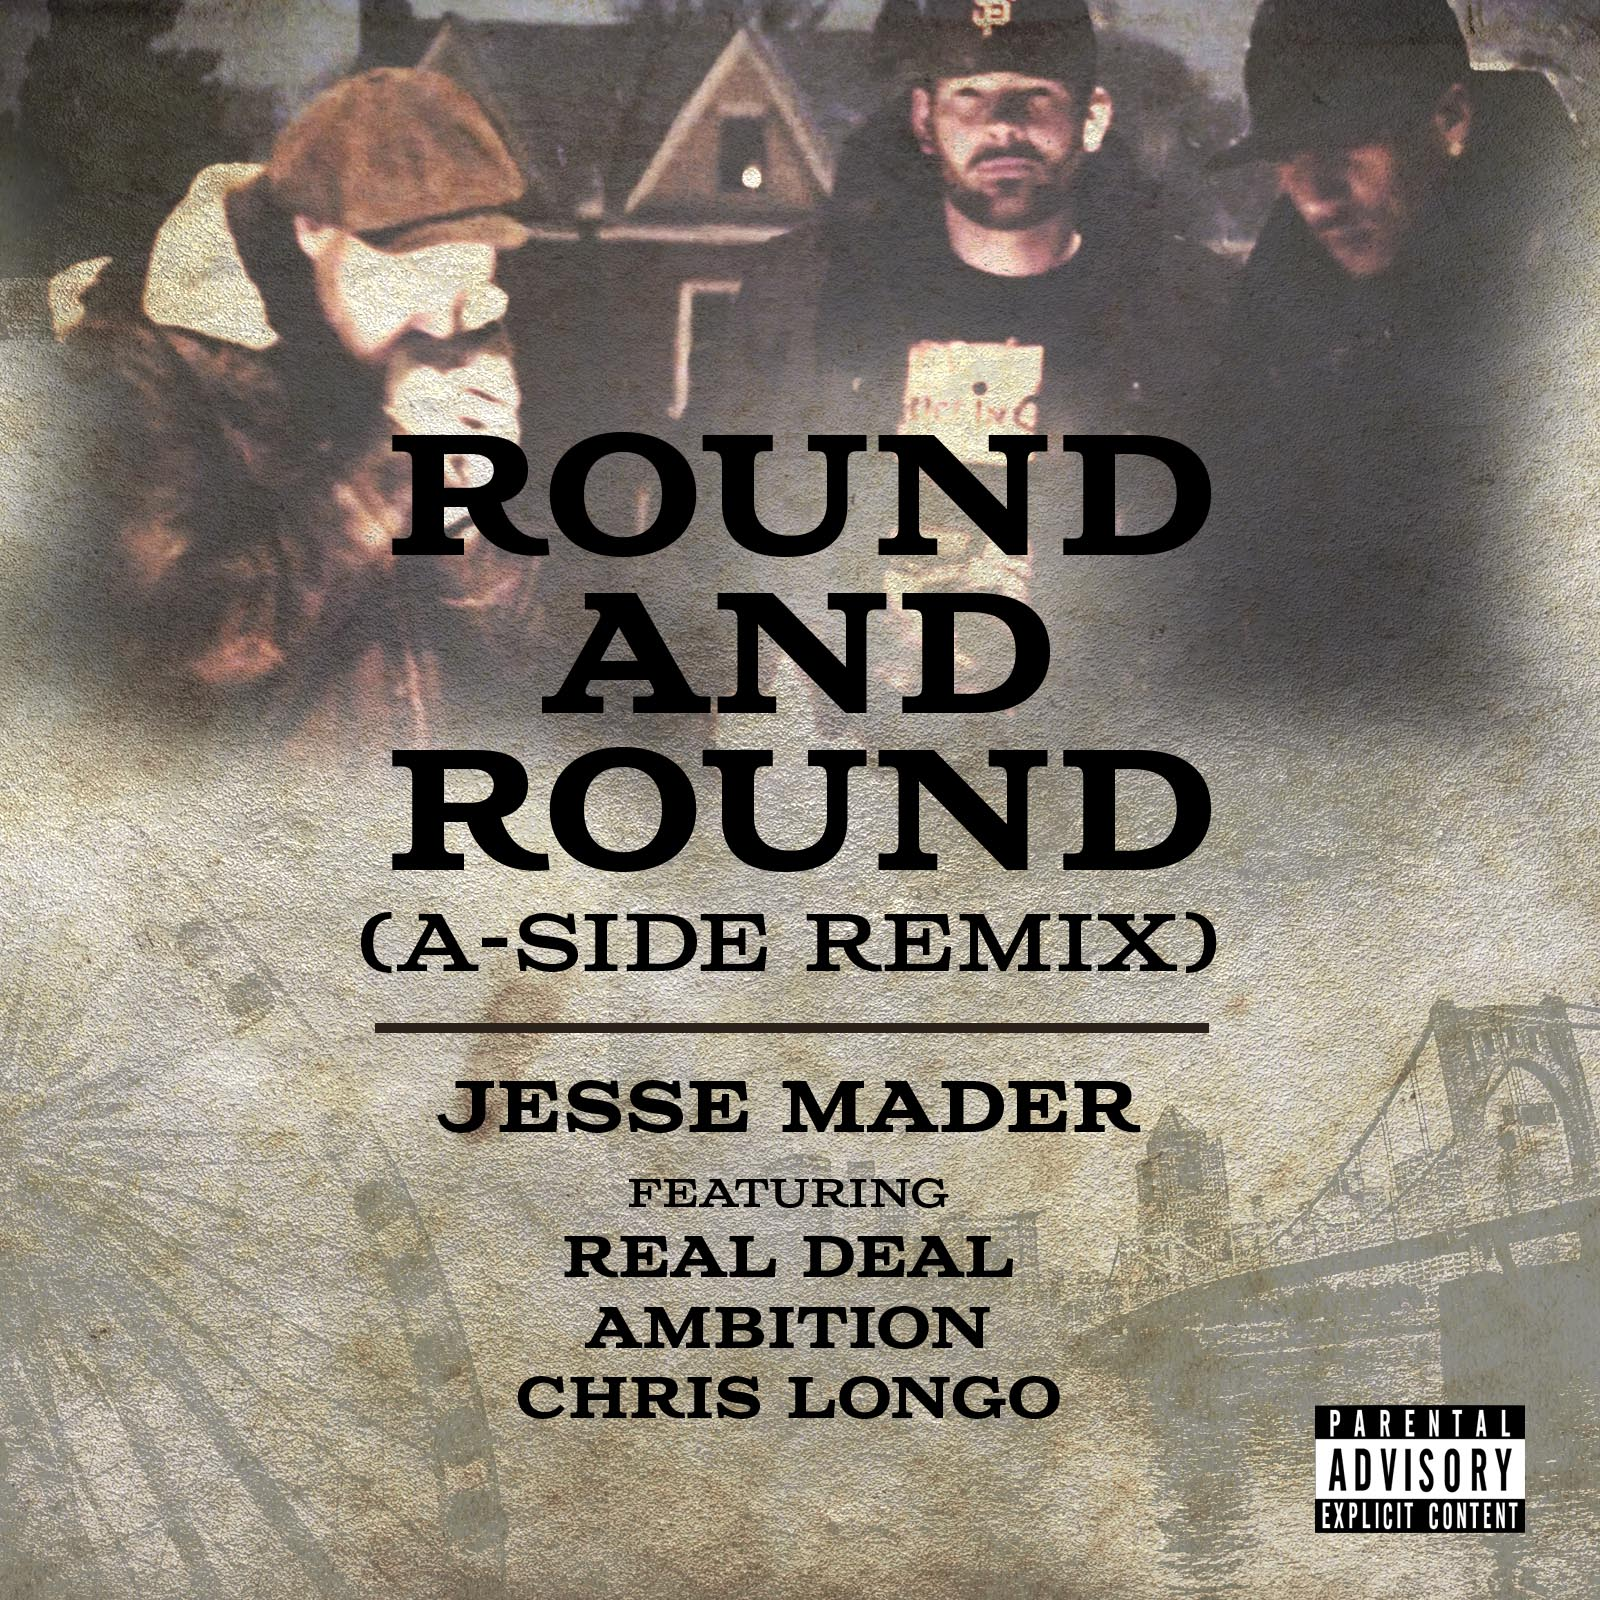 Jesse-Mader-Round-and-Round-Remix-cover-700x703